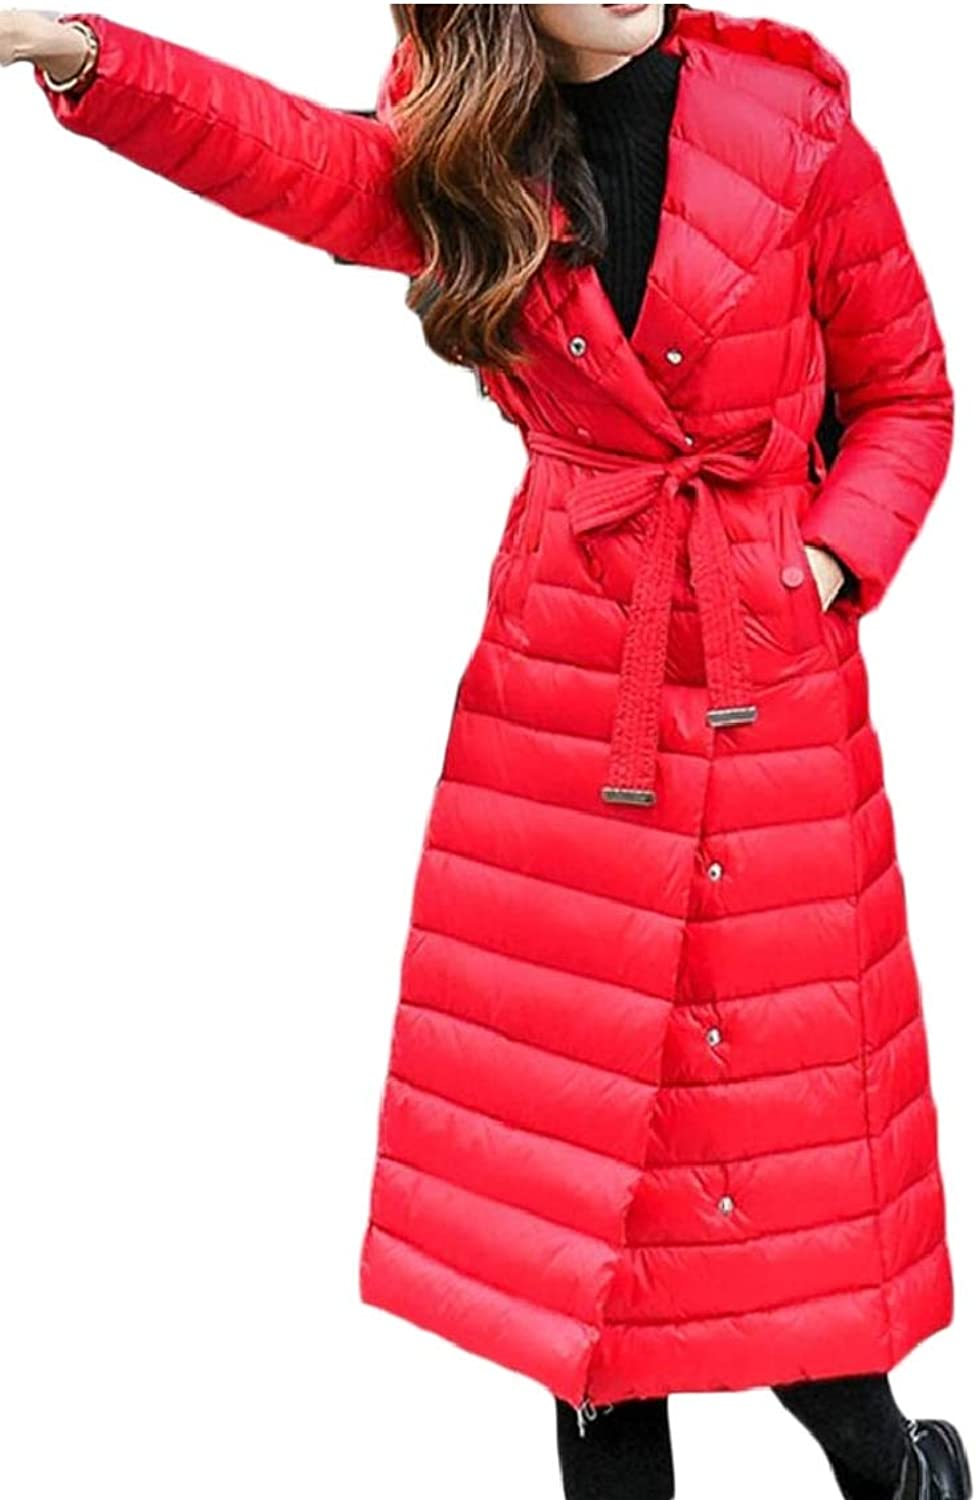 Keaac Women's Outdoor Double Breasted Coat Utral Light Hooded Long Down Jacket